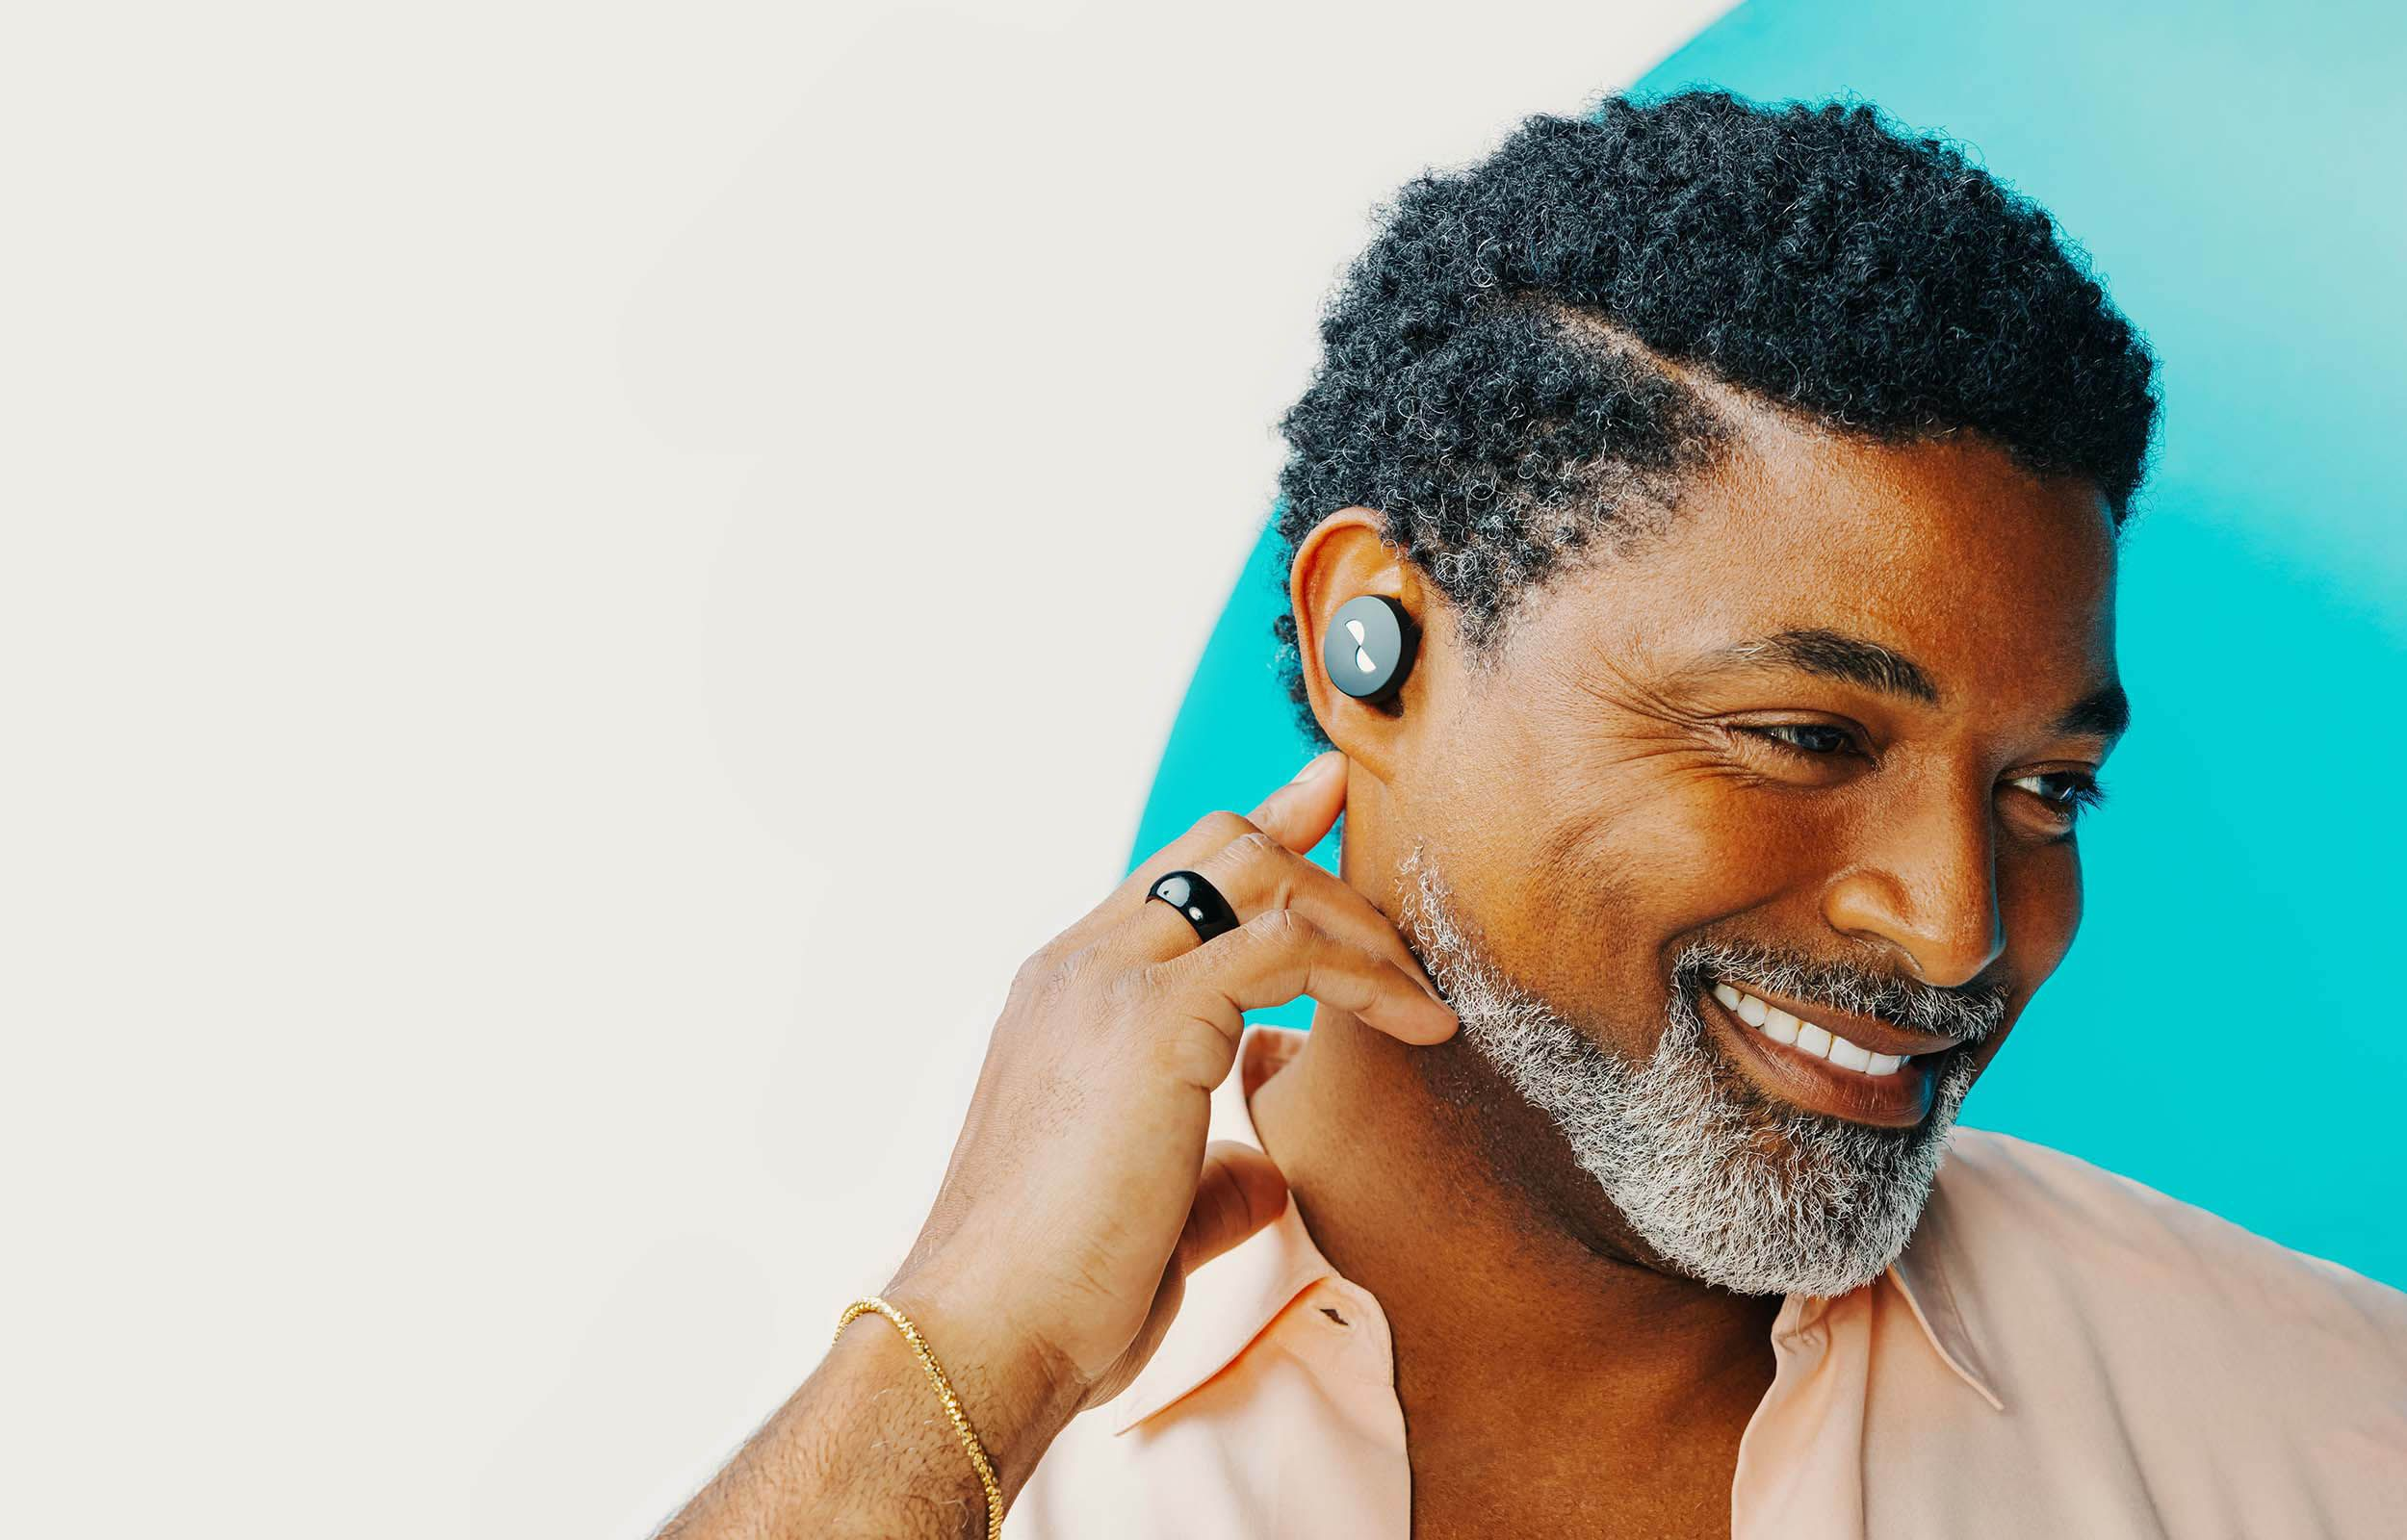 Person posing with NURATRUE earbuds in ears